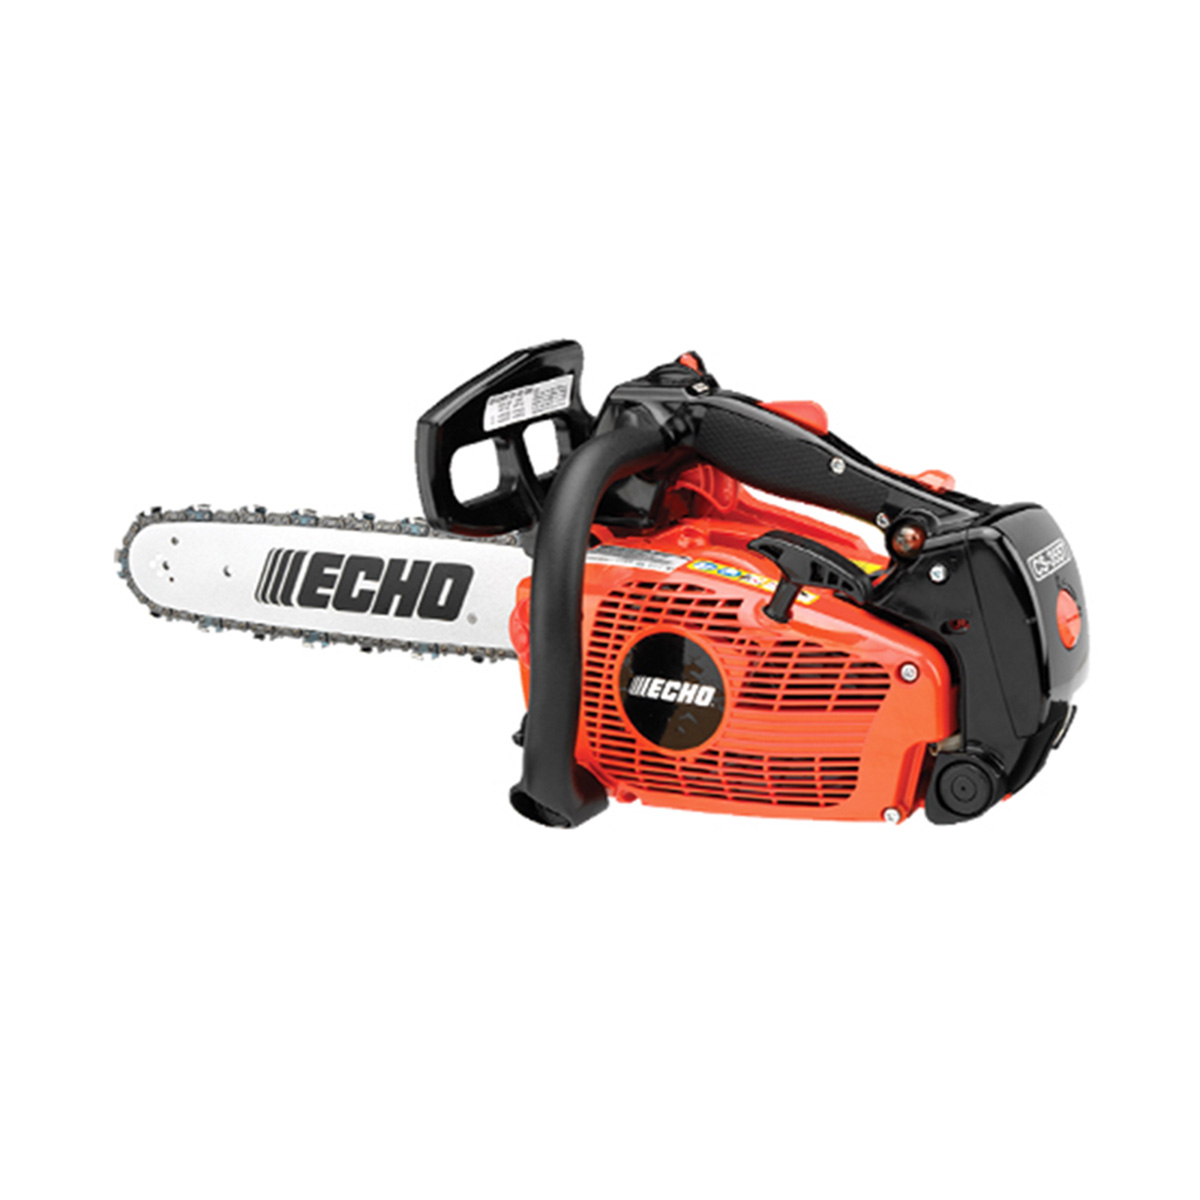 CS-355T-16 ECHO Chainsaw with 16